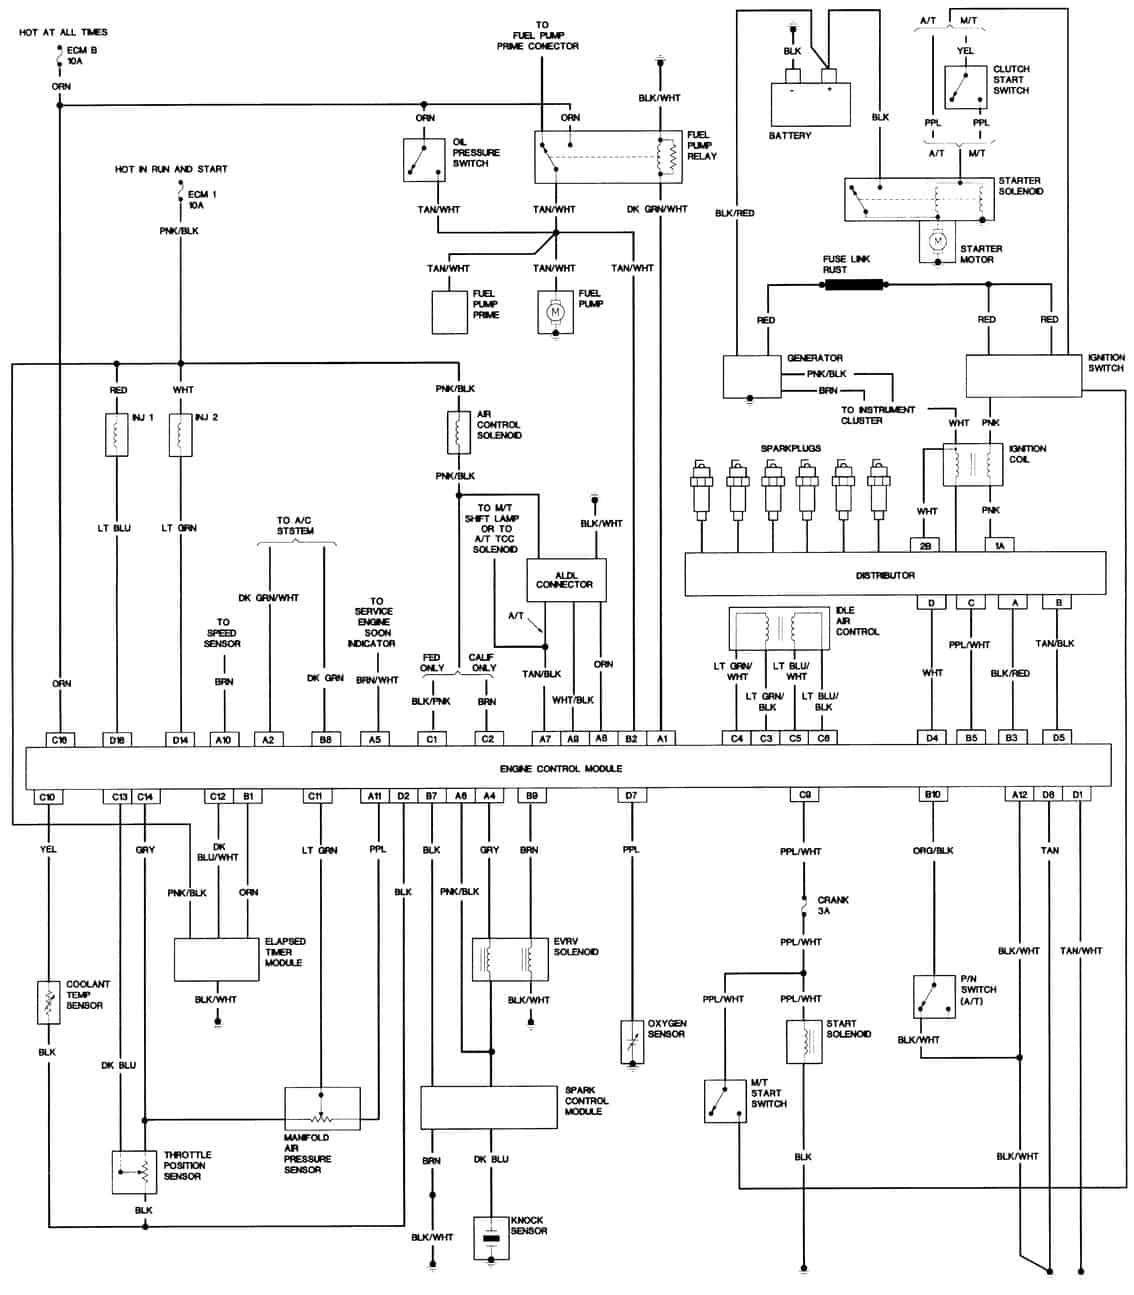 1988 Chevy Distributor Wiring Diagram Trusted Hei 1985 K10 No Spark S 10 V6 Freeautomechanic Rh Com Delco Remy